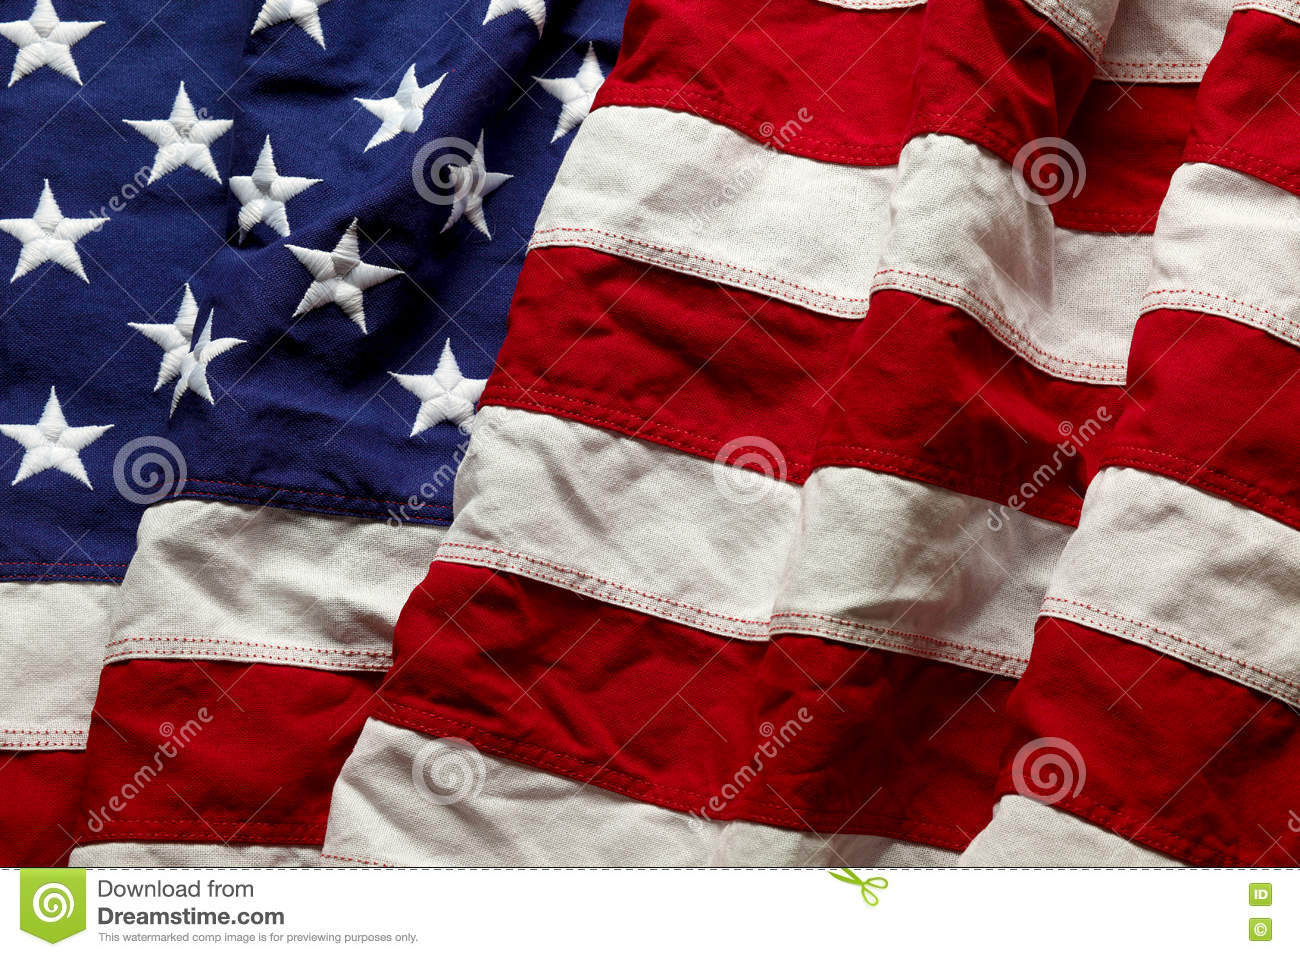 American flag for Memorial Day or 4th of July